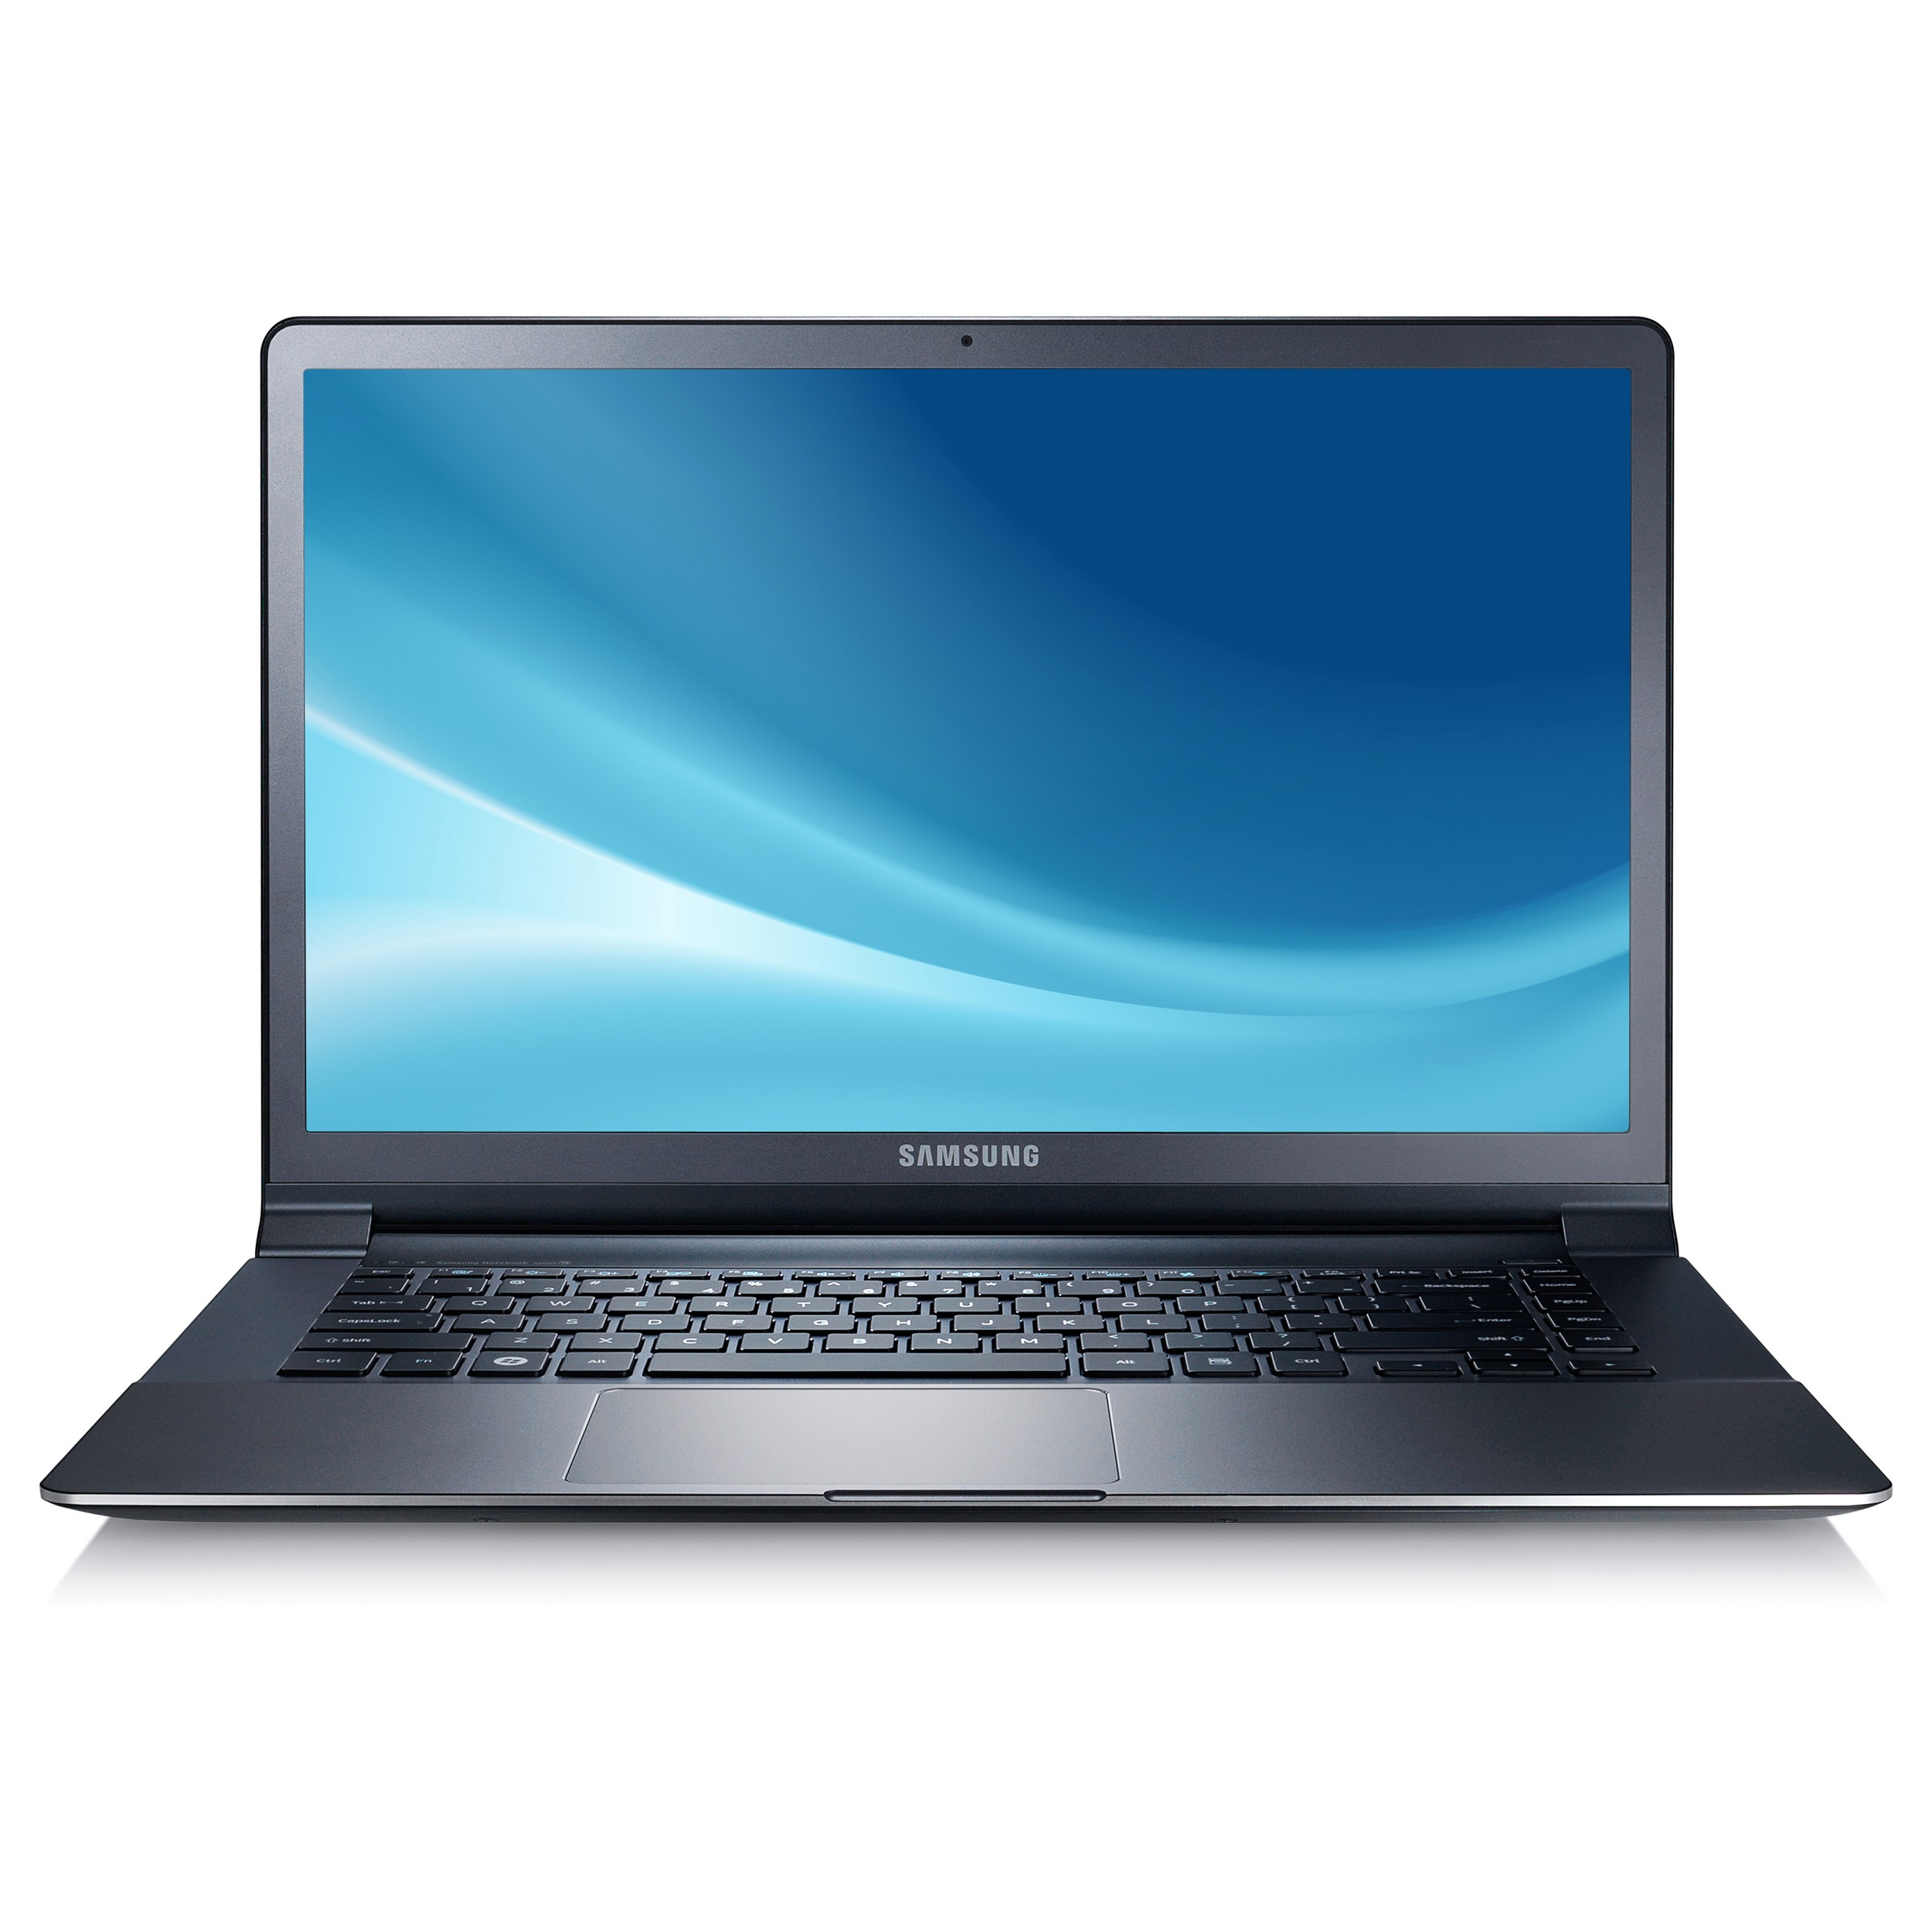 "Samsung 15"" Series 9 NP900X4C Ultrabook PC with Intel Core i5-3317U Processor and Windows 8"